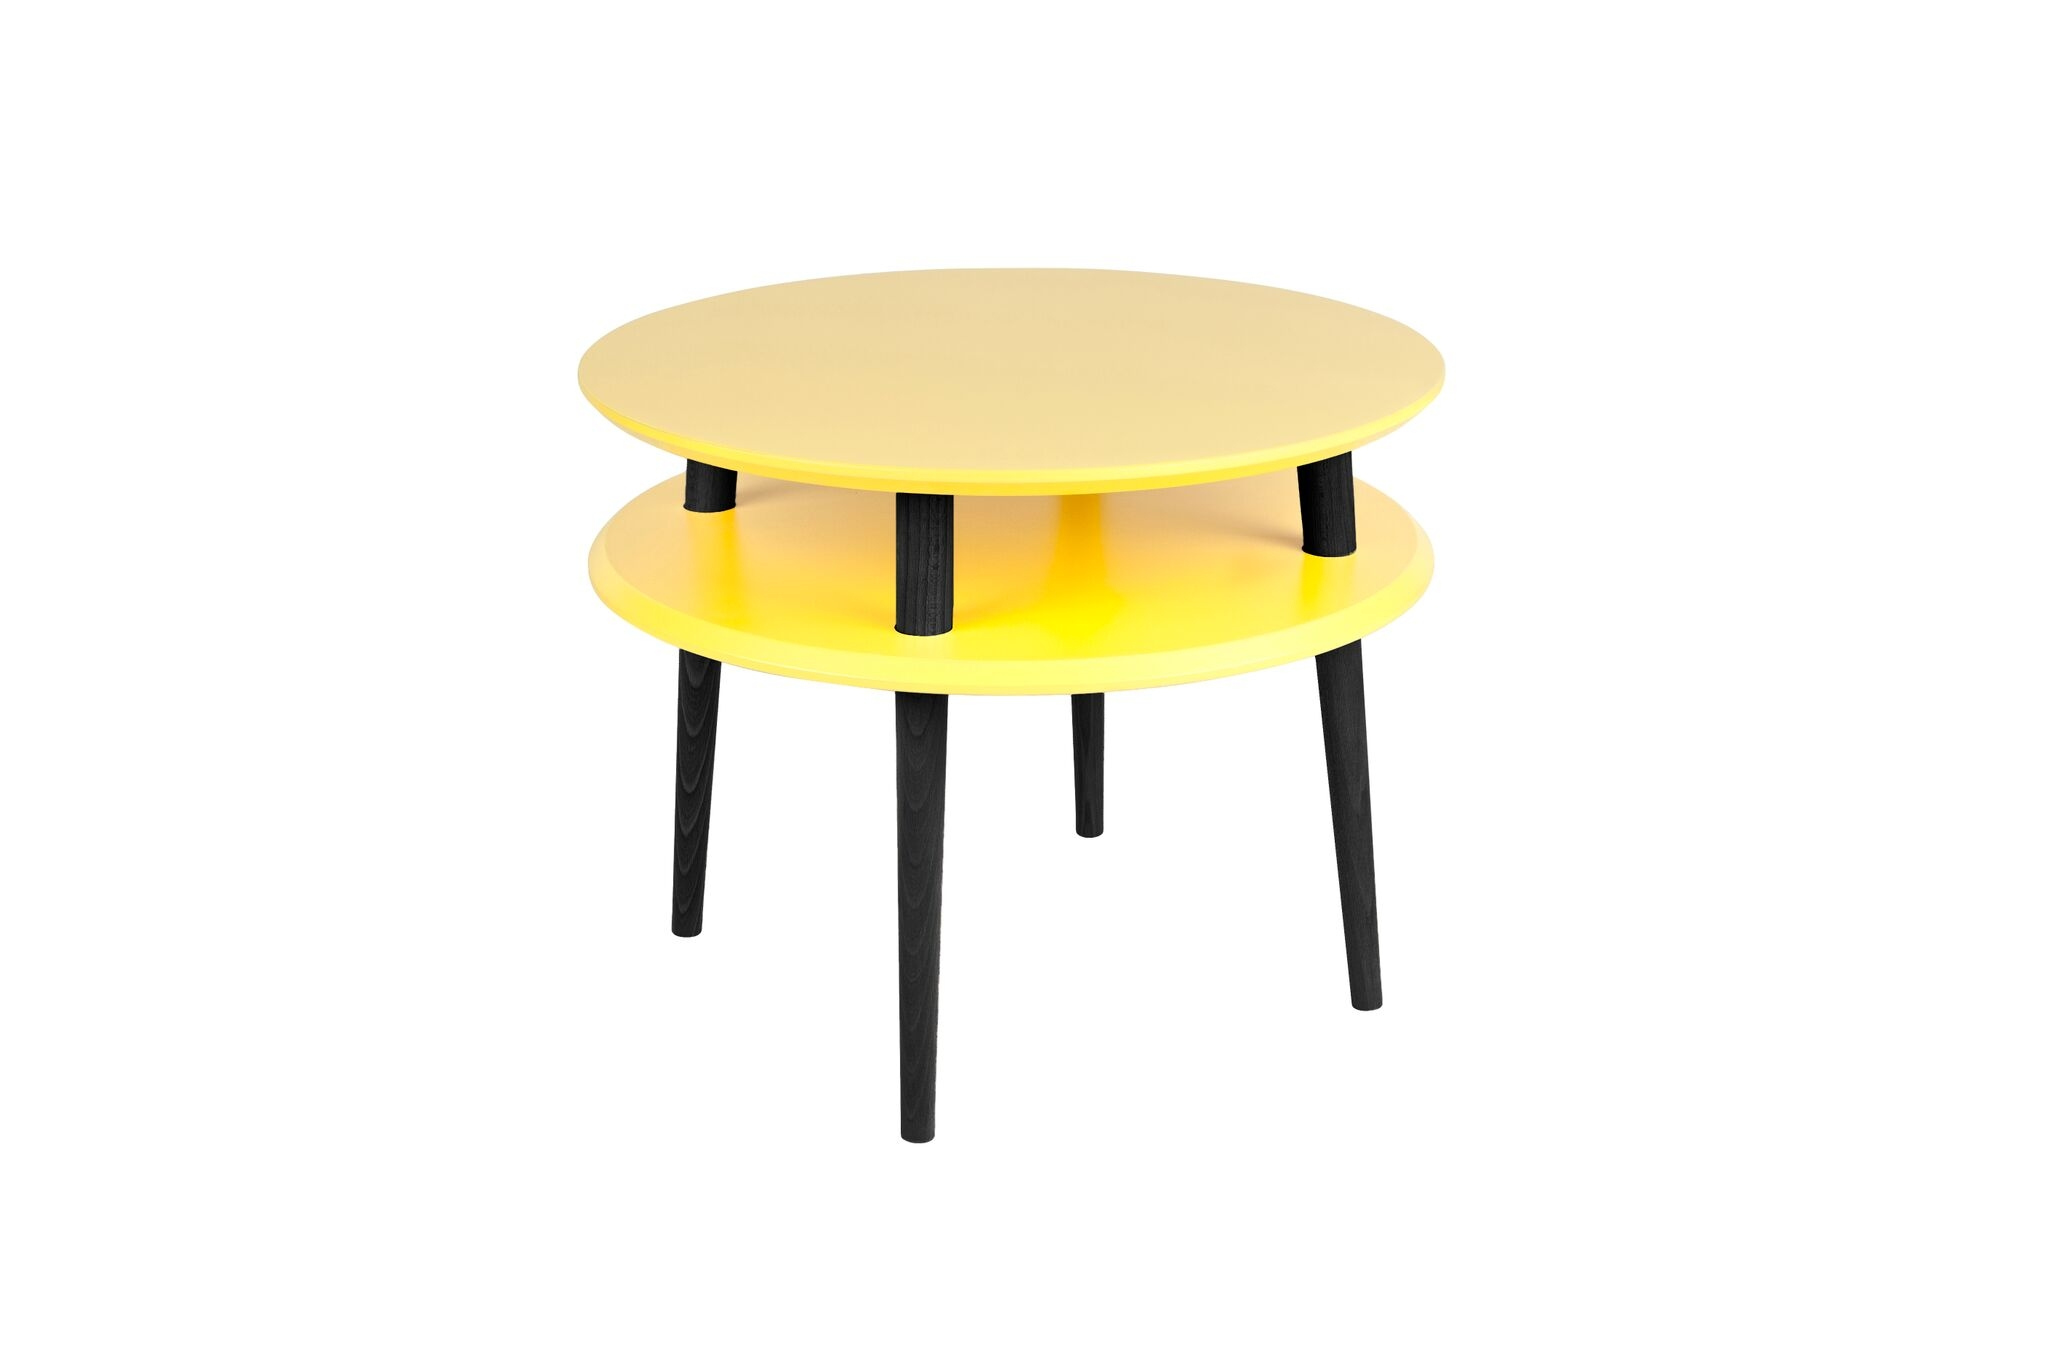 Masa de cafea Ufo Medium Yellow / Black O57xh45 cm